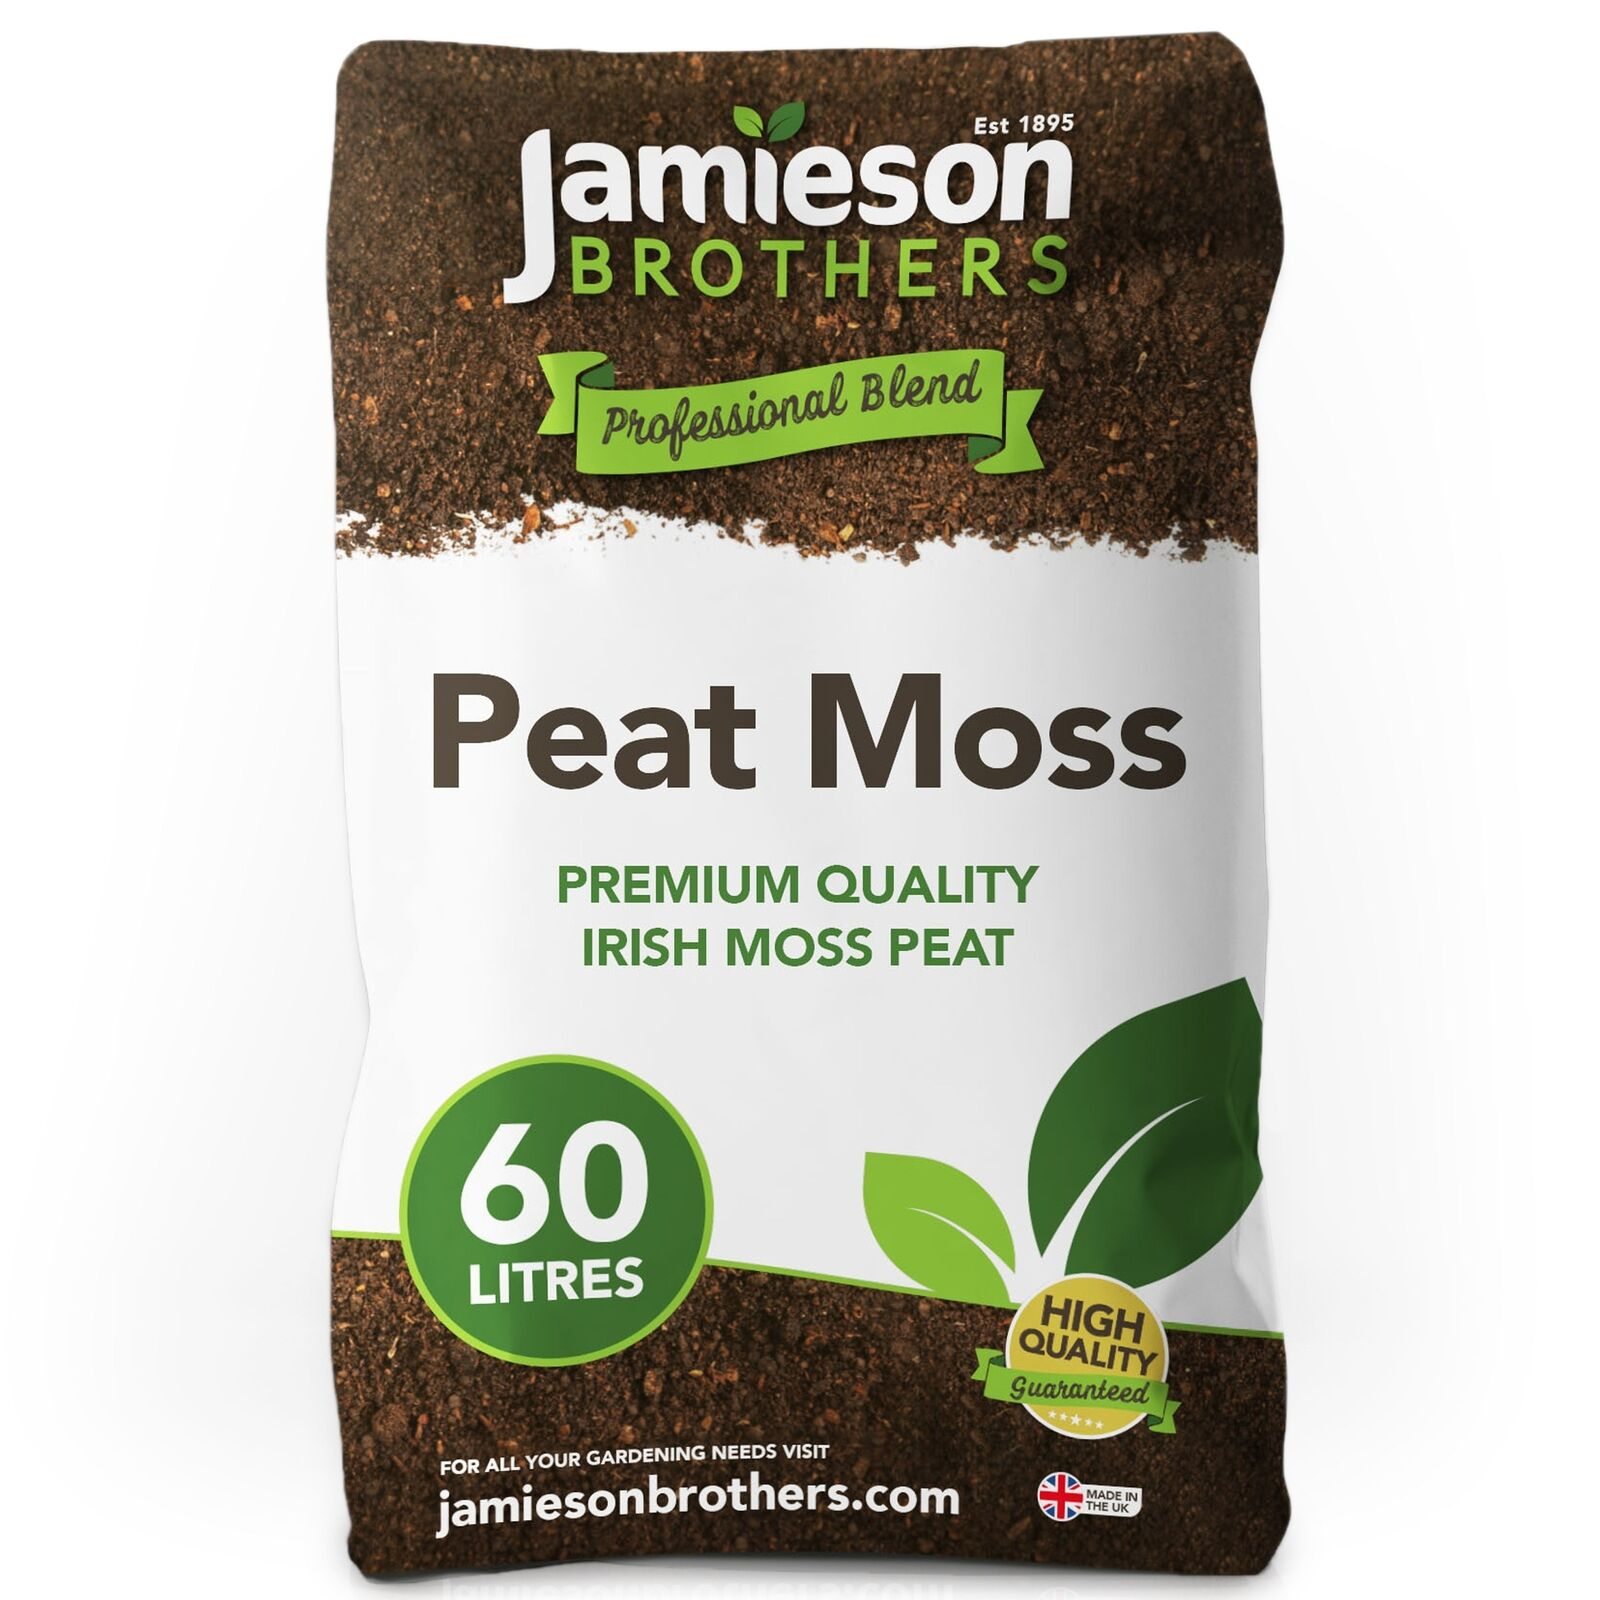 Jamieson Brothers® Jamieson Brothers Peat Moss 60L - 100% natural and disease fr